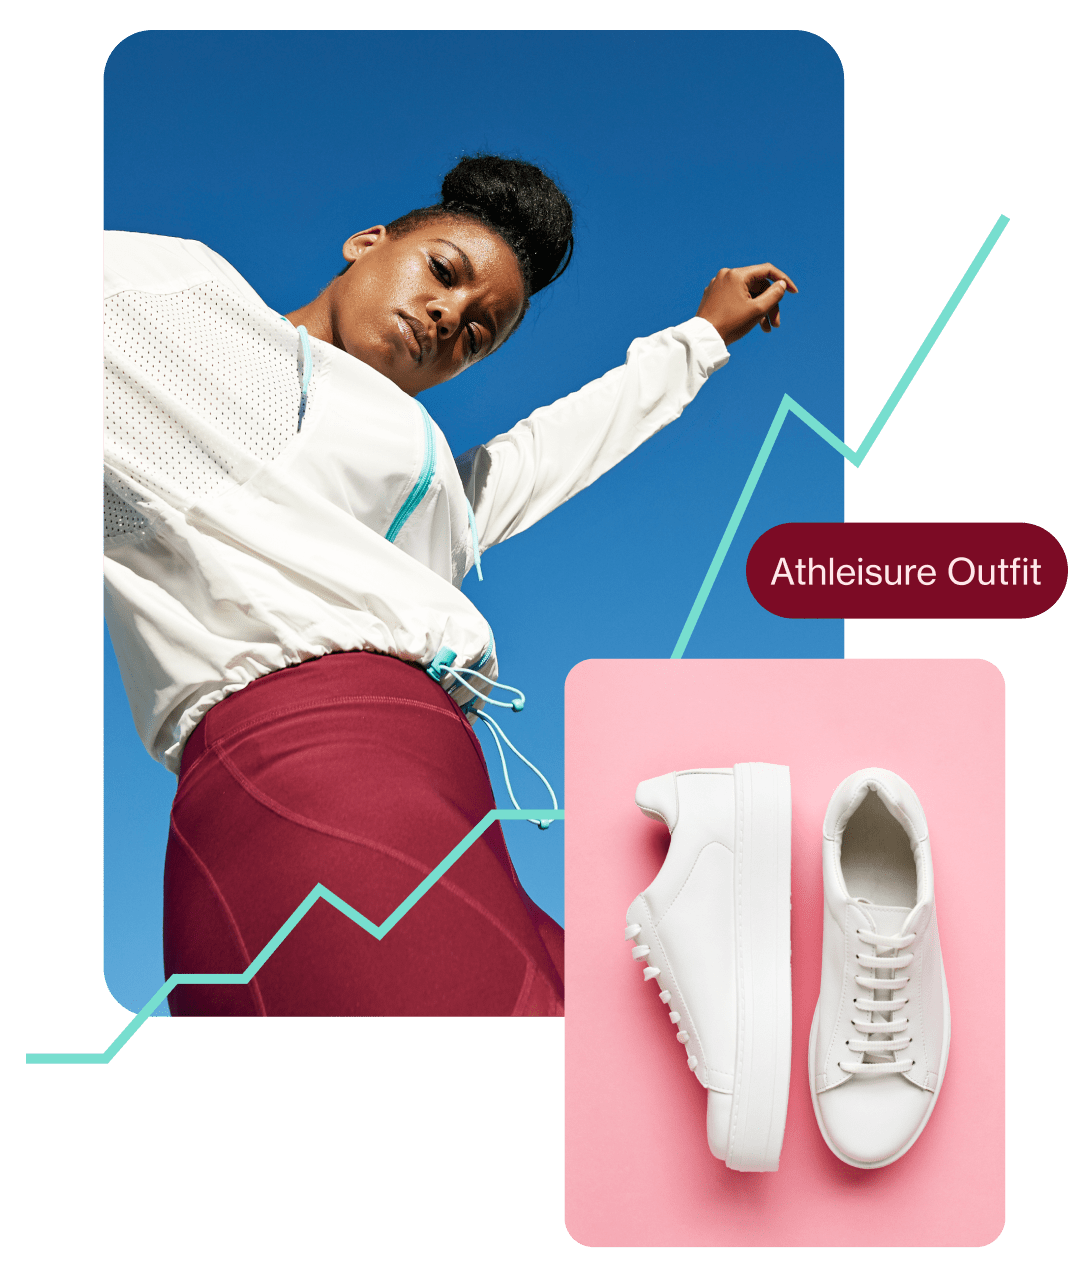 Photos showing a Black woman in a white shirt and red skirt, and a pair of white sneakers